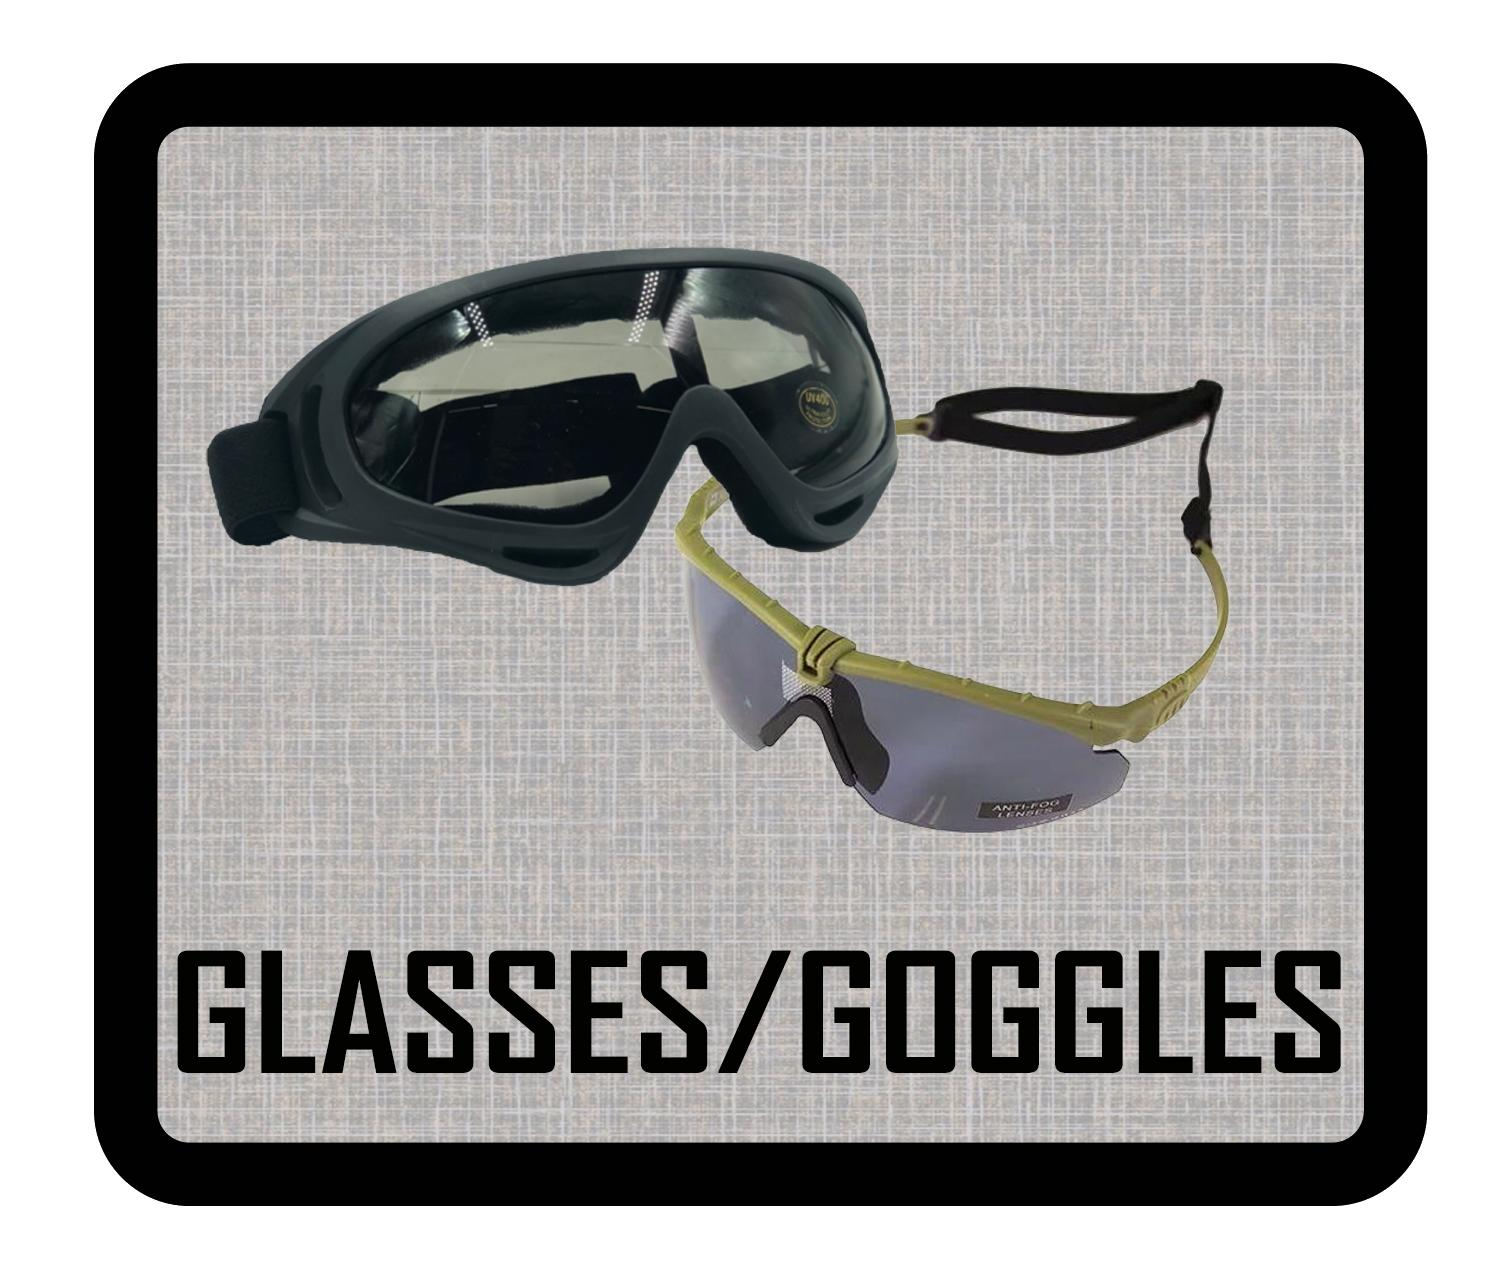 GLASSES / GOGGLES